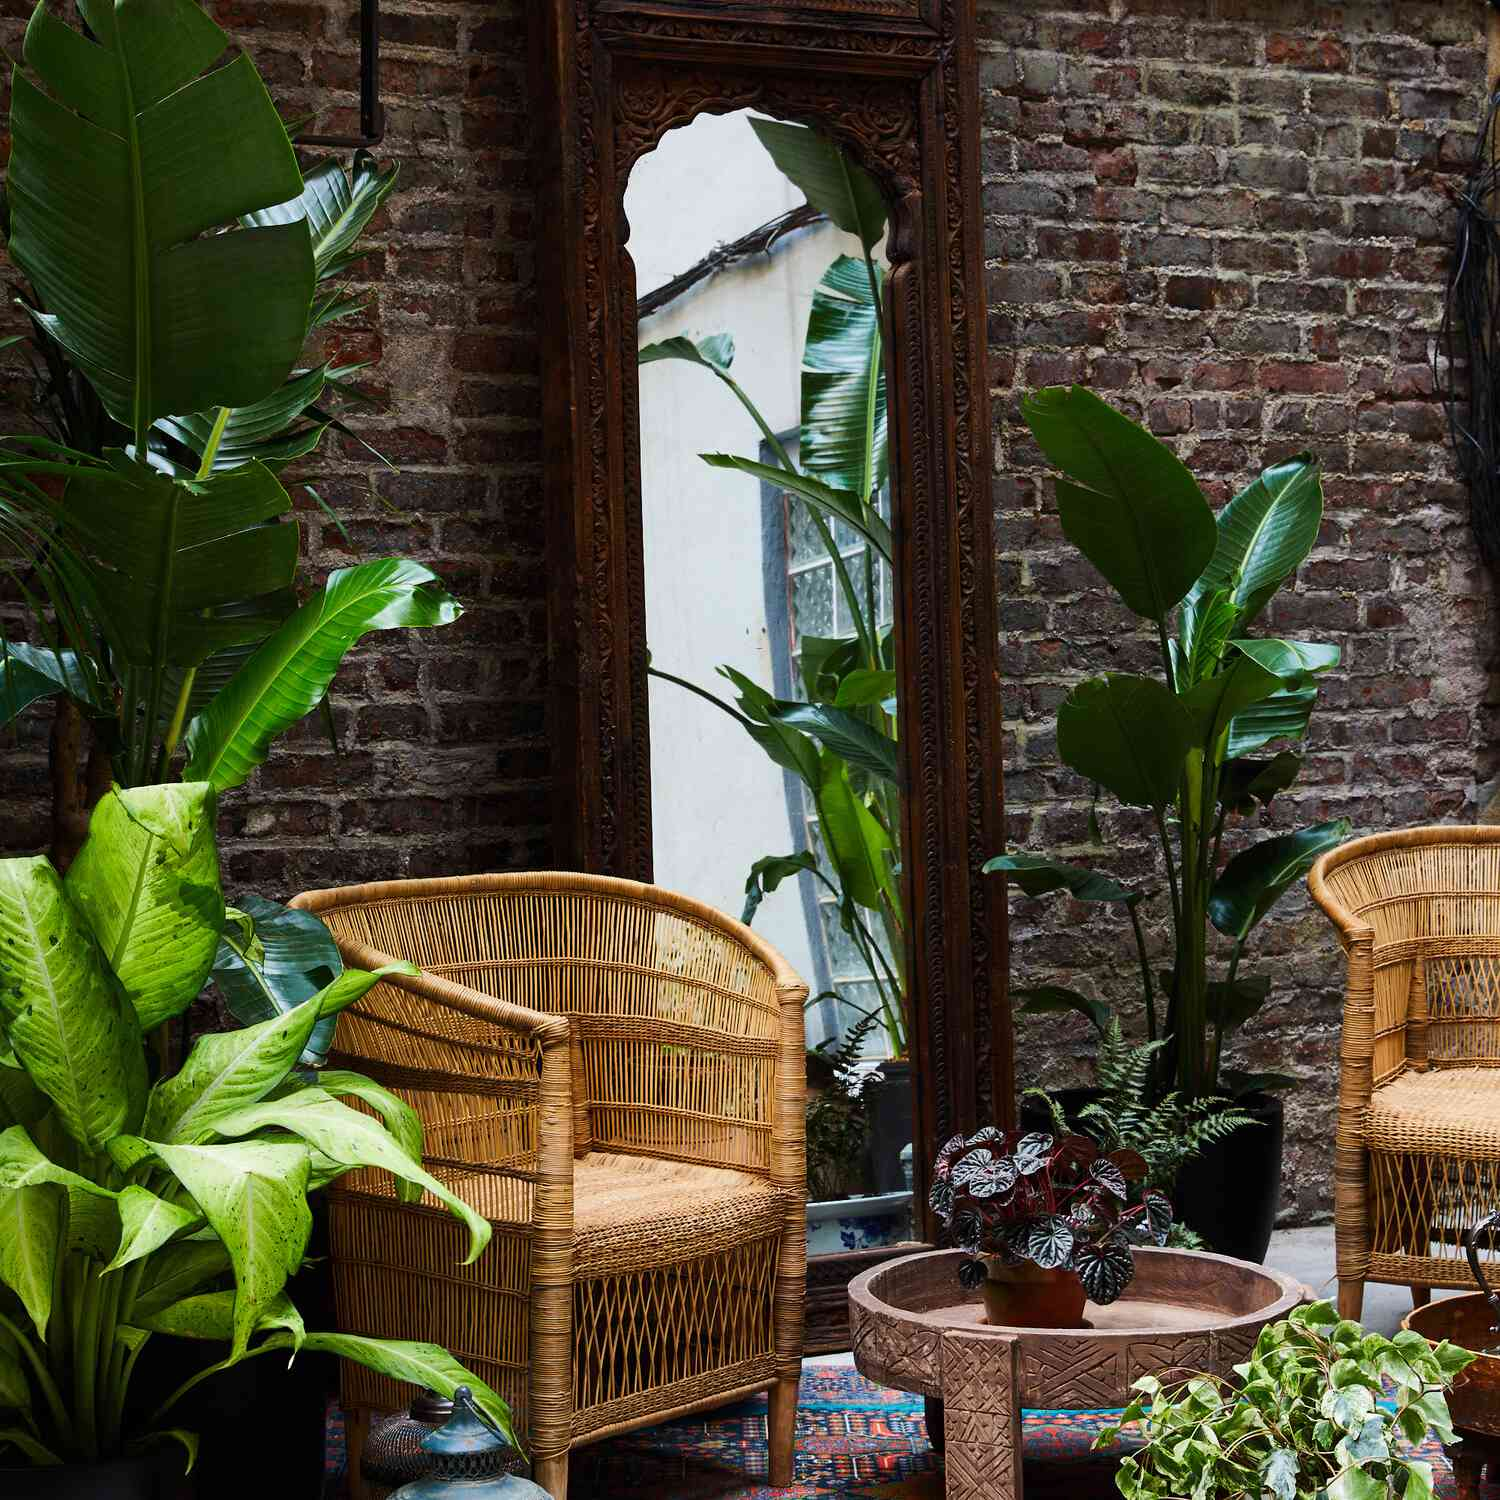 Outdoor patio with lots of plants.